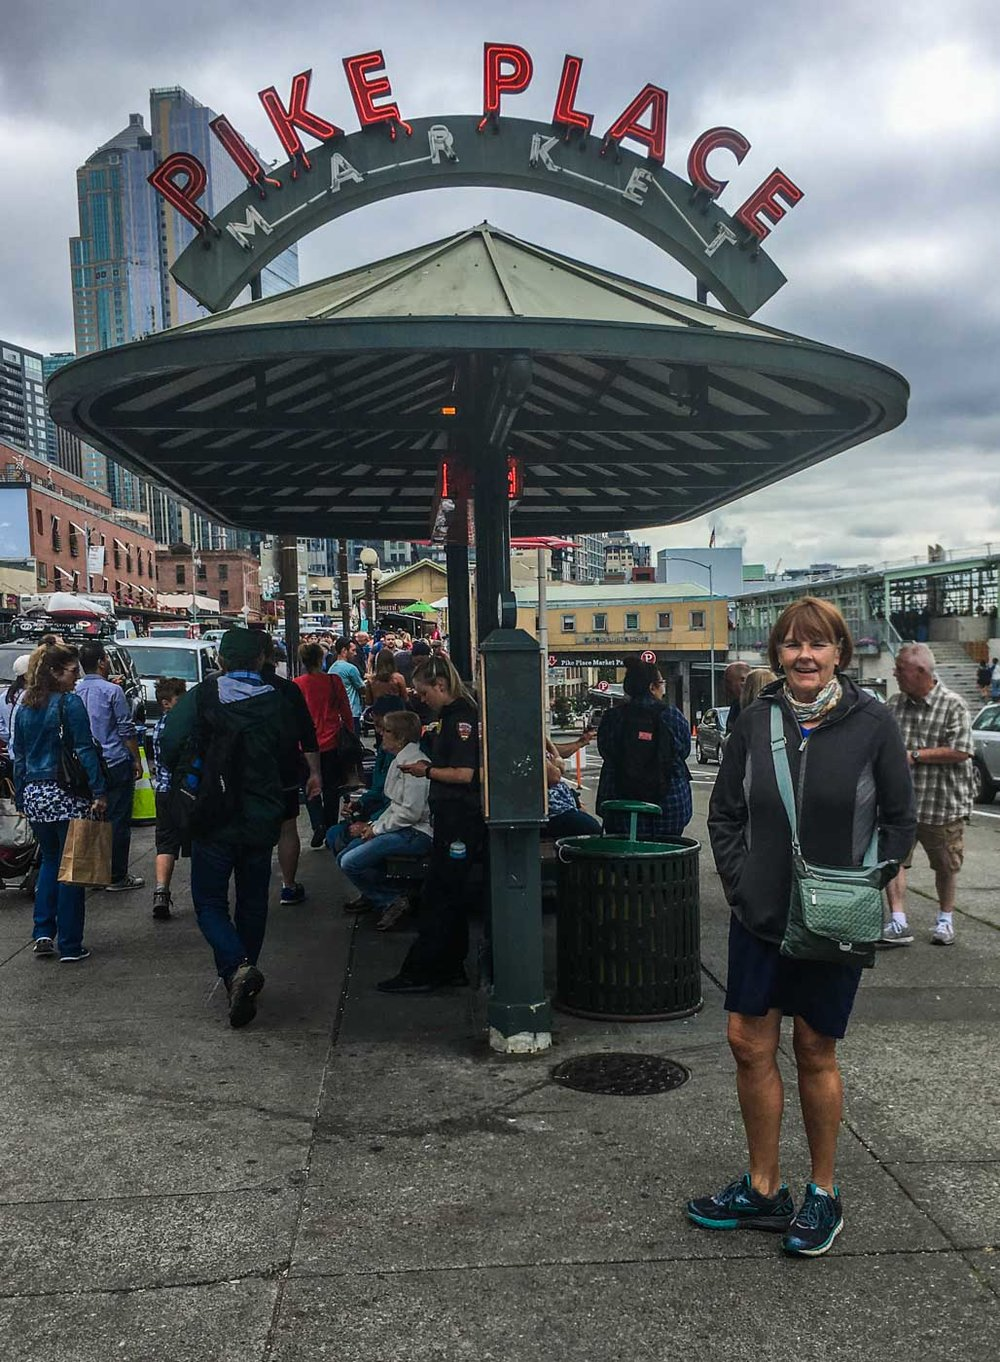 Arriving at Pike Place